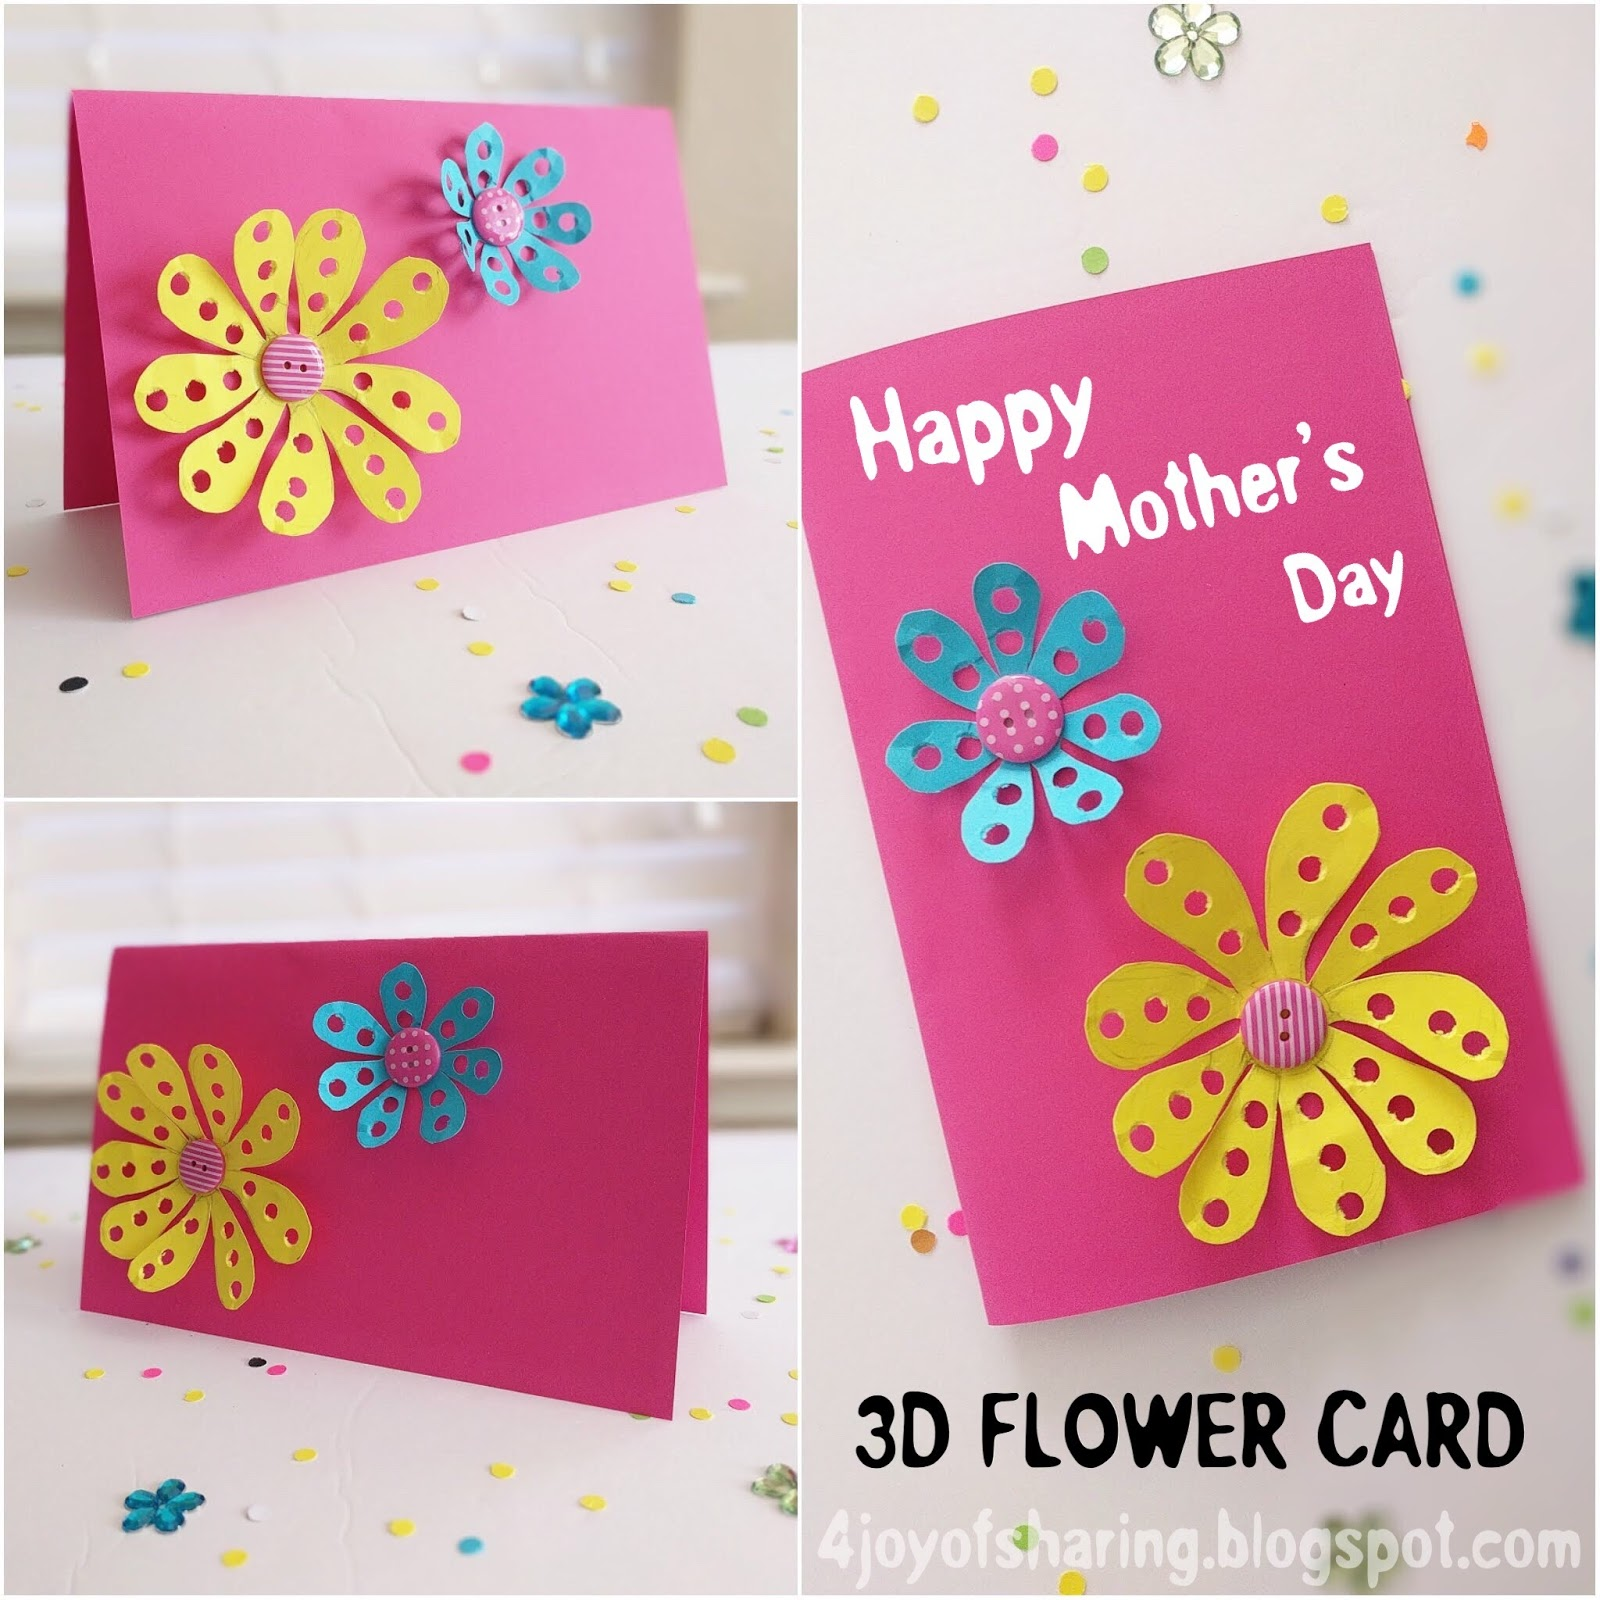 Diy Mother S Day 3d Flower Card The Joy Of Sharing